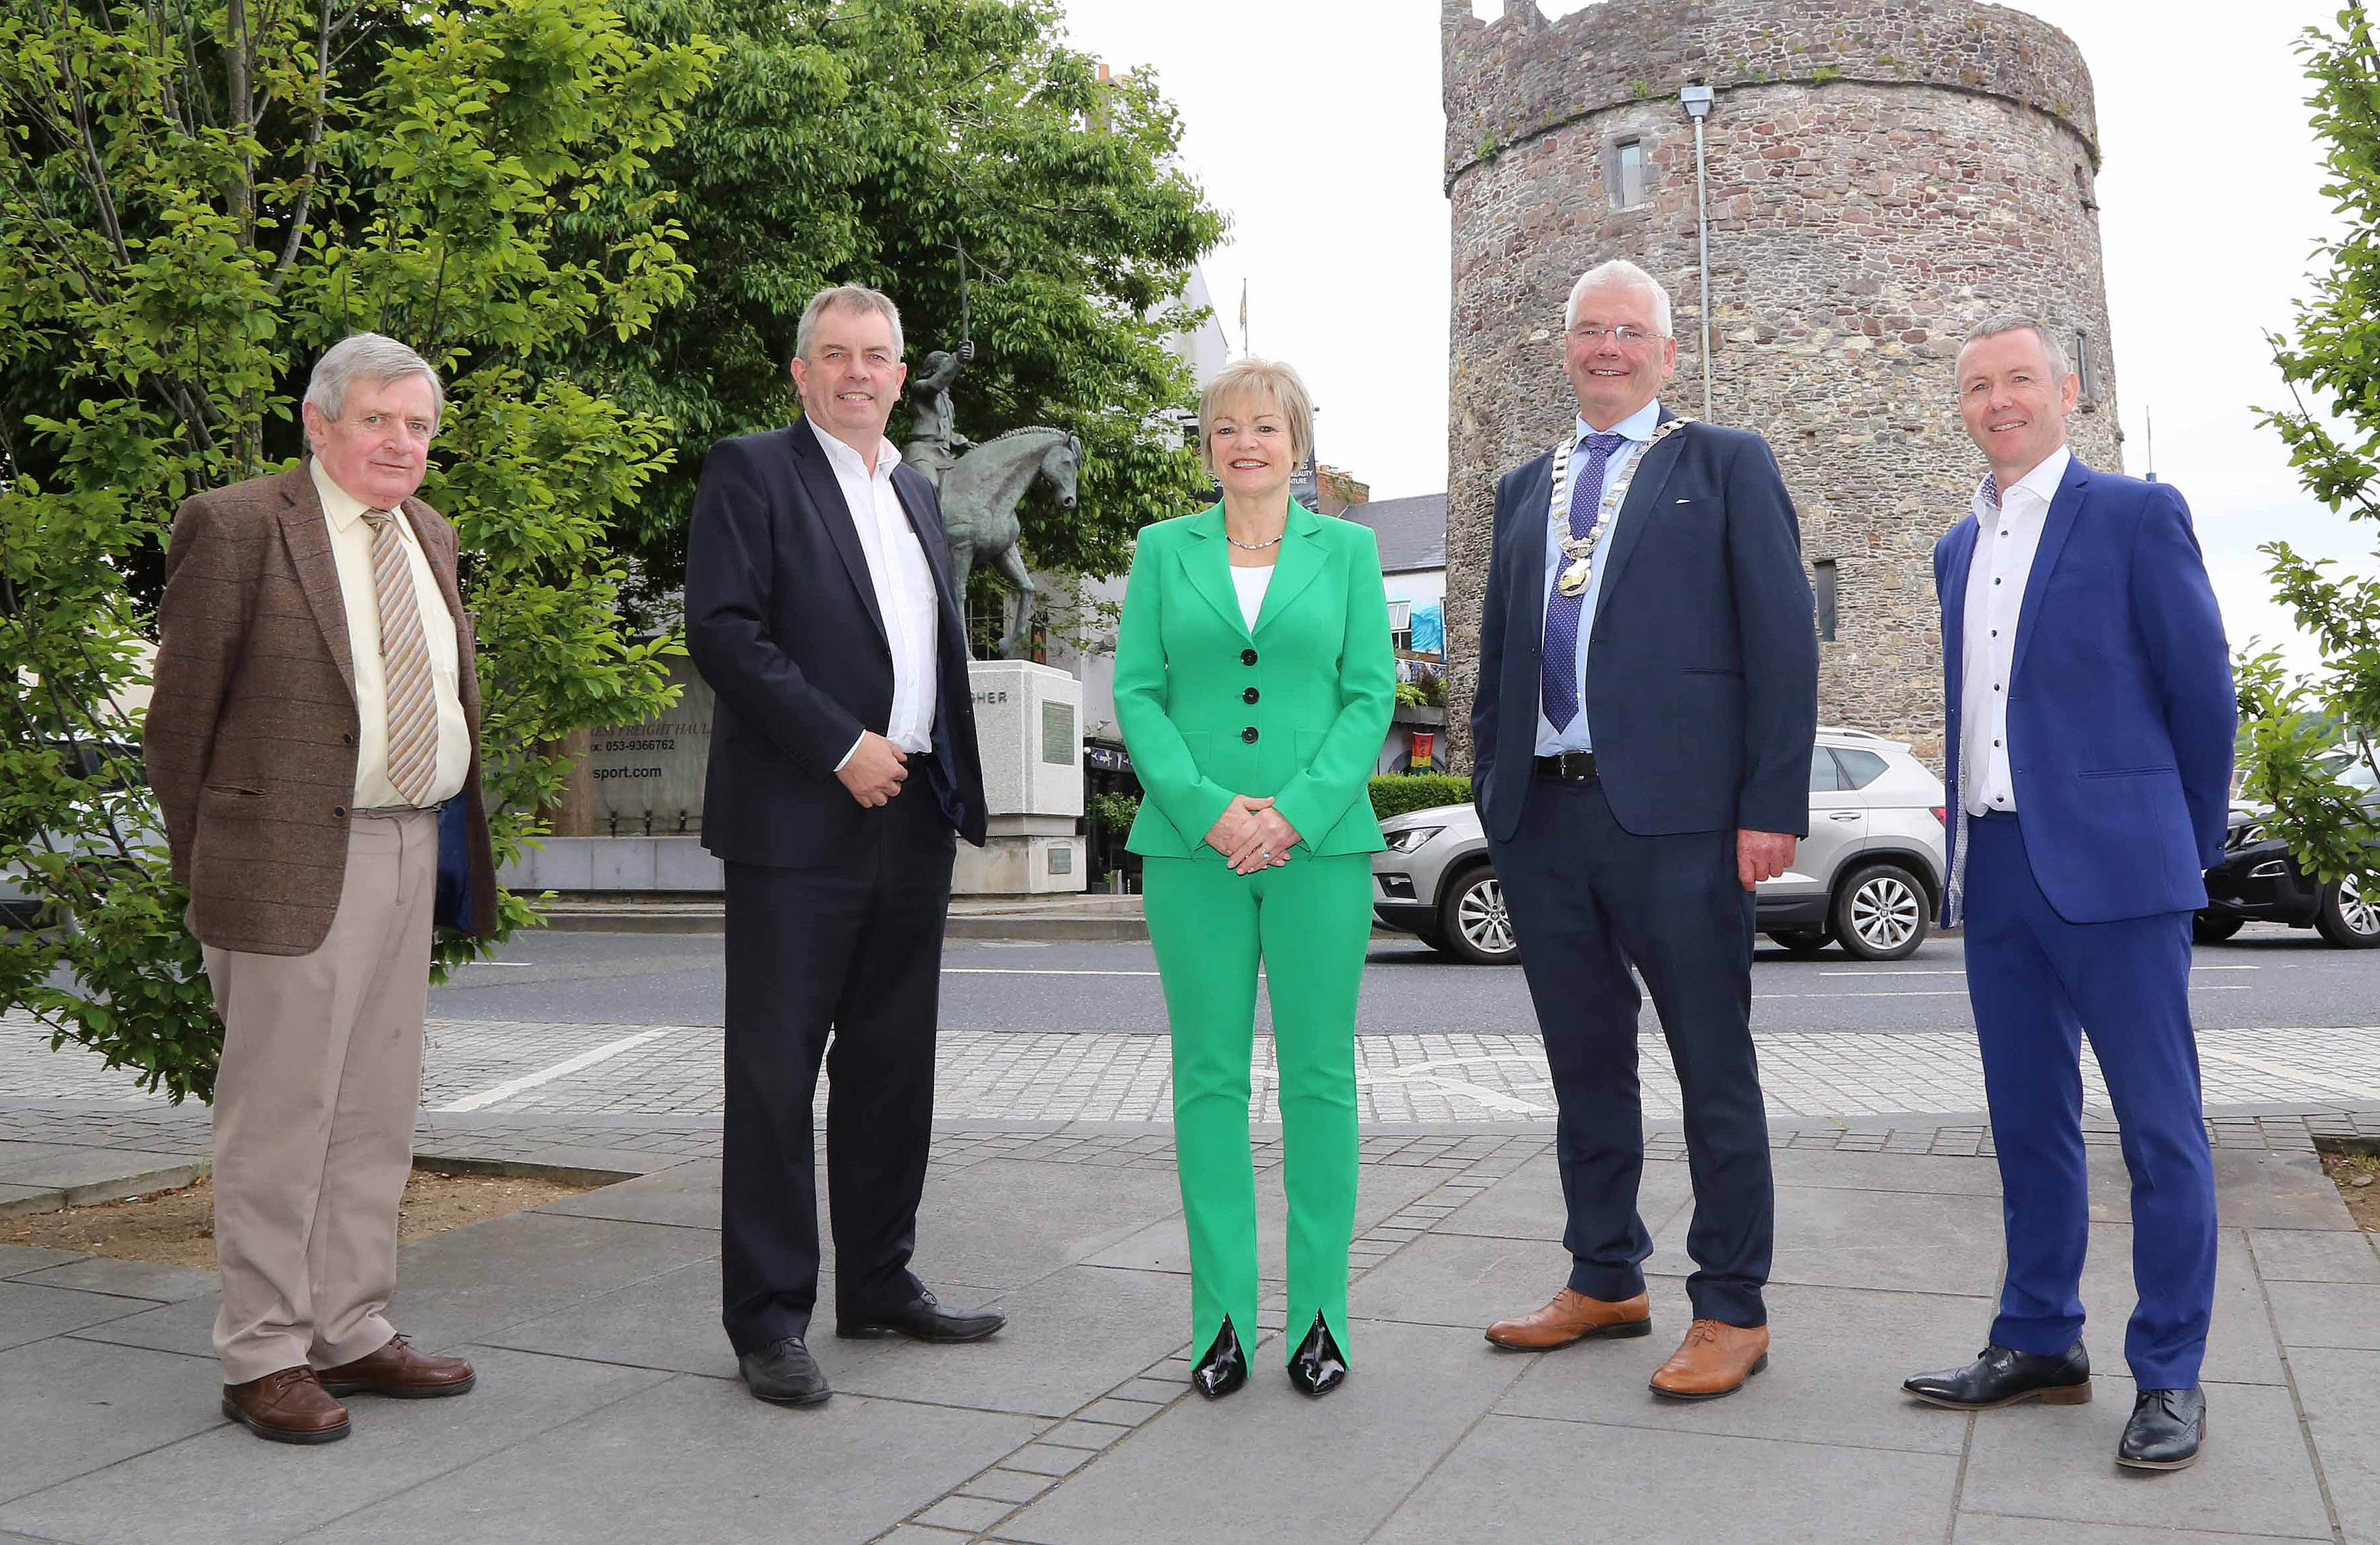 Southern Regional Assembly Elects Cathaoirleach 2021-22